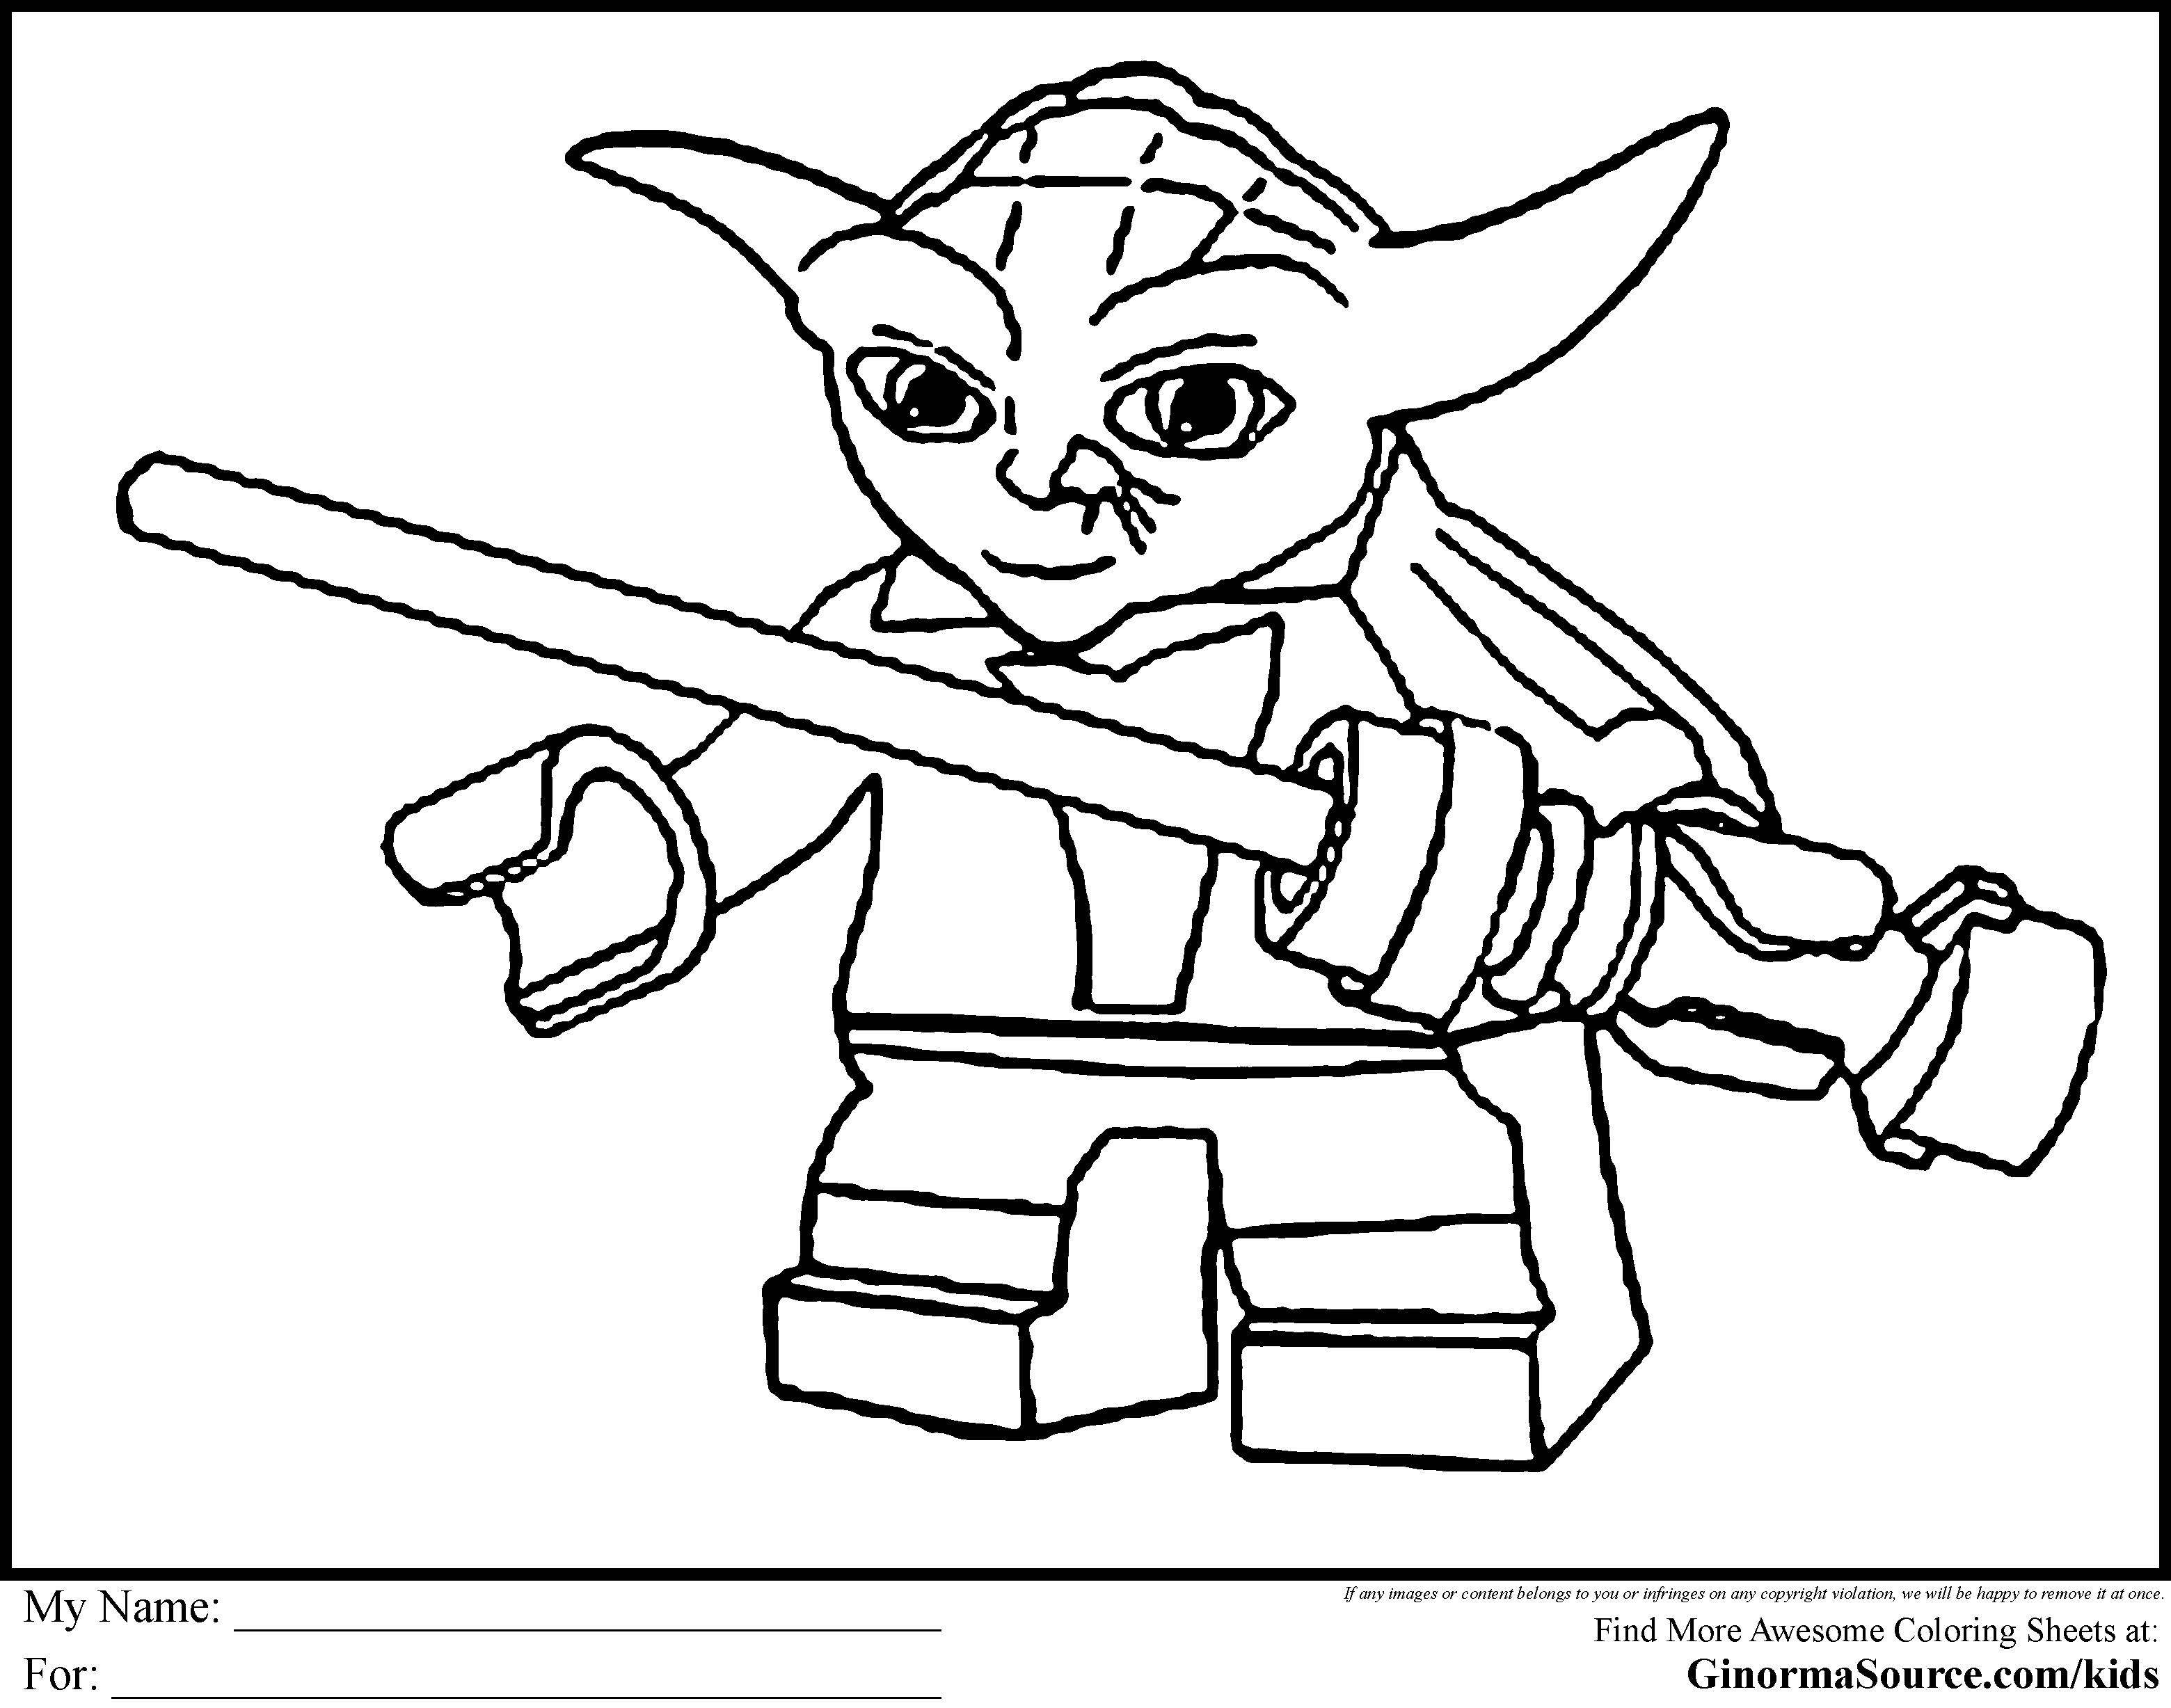 Lego Star Wars Coloring Pages To Download And Print For Free Wars Legos Coloring Pages